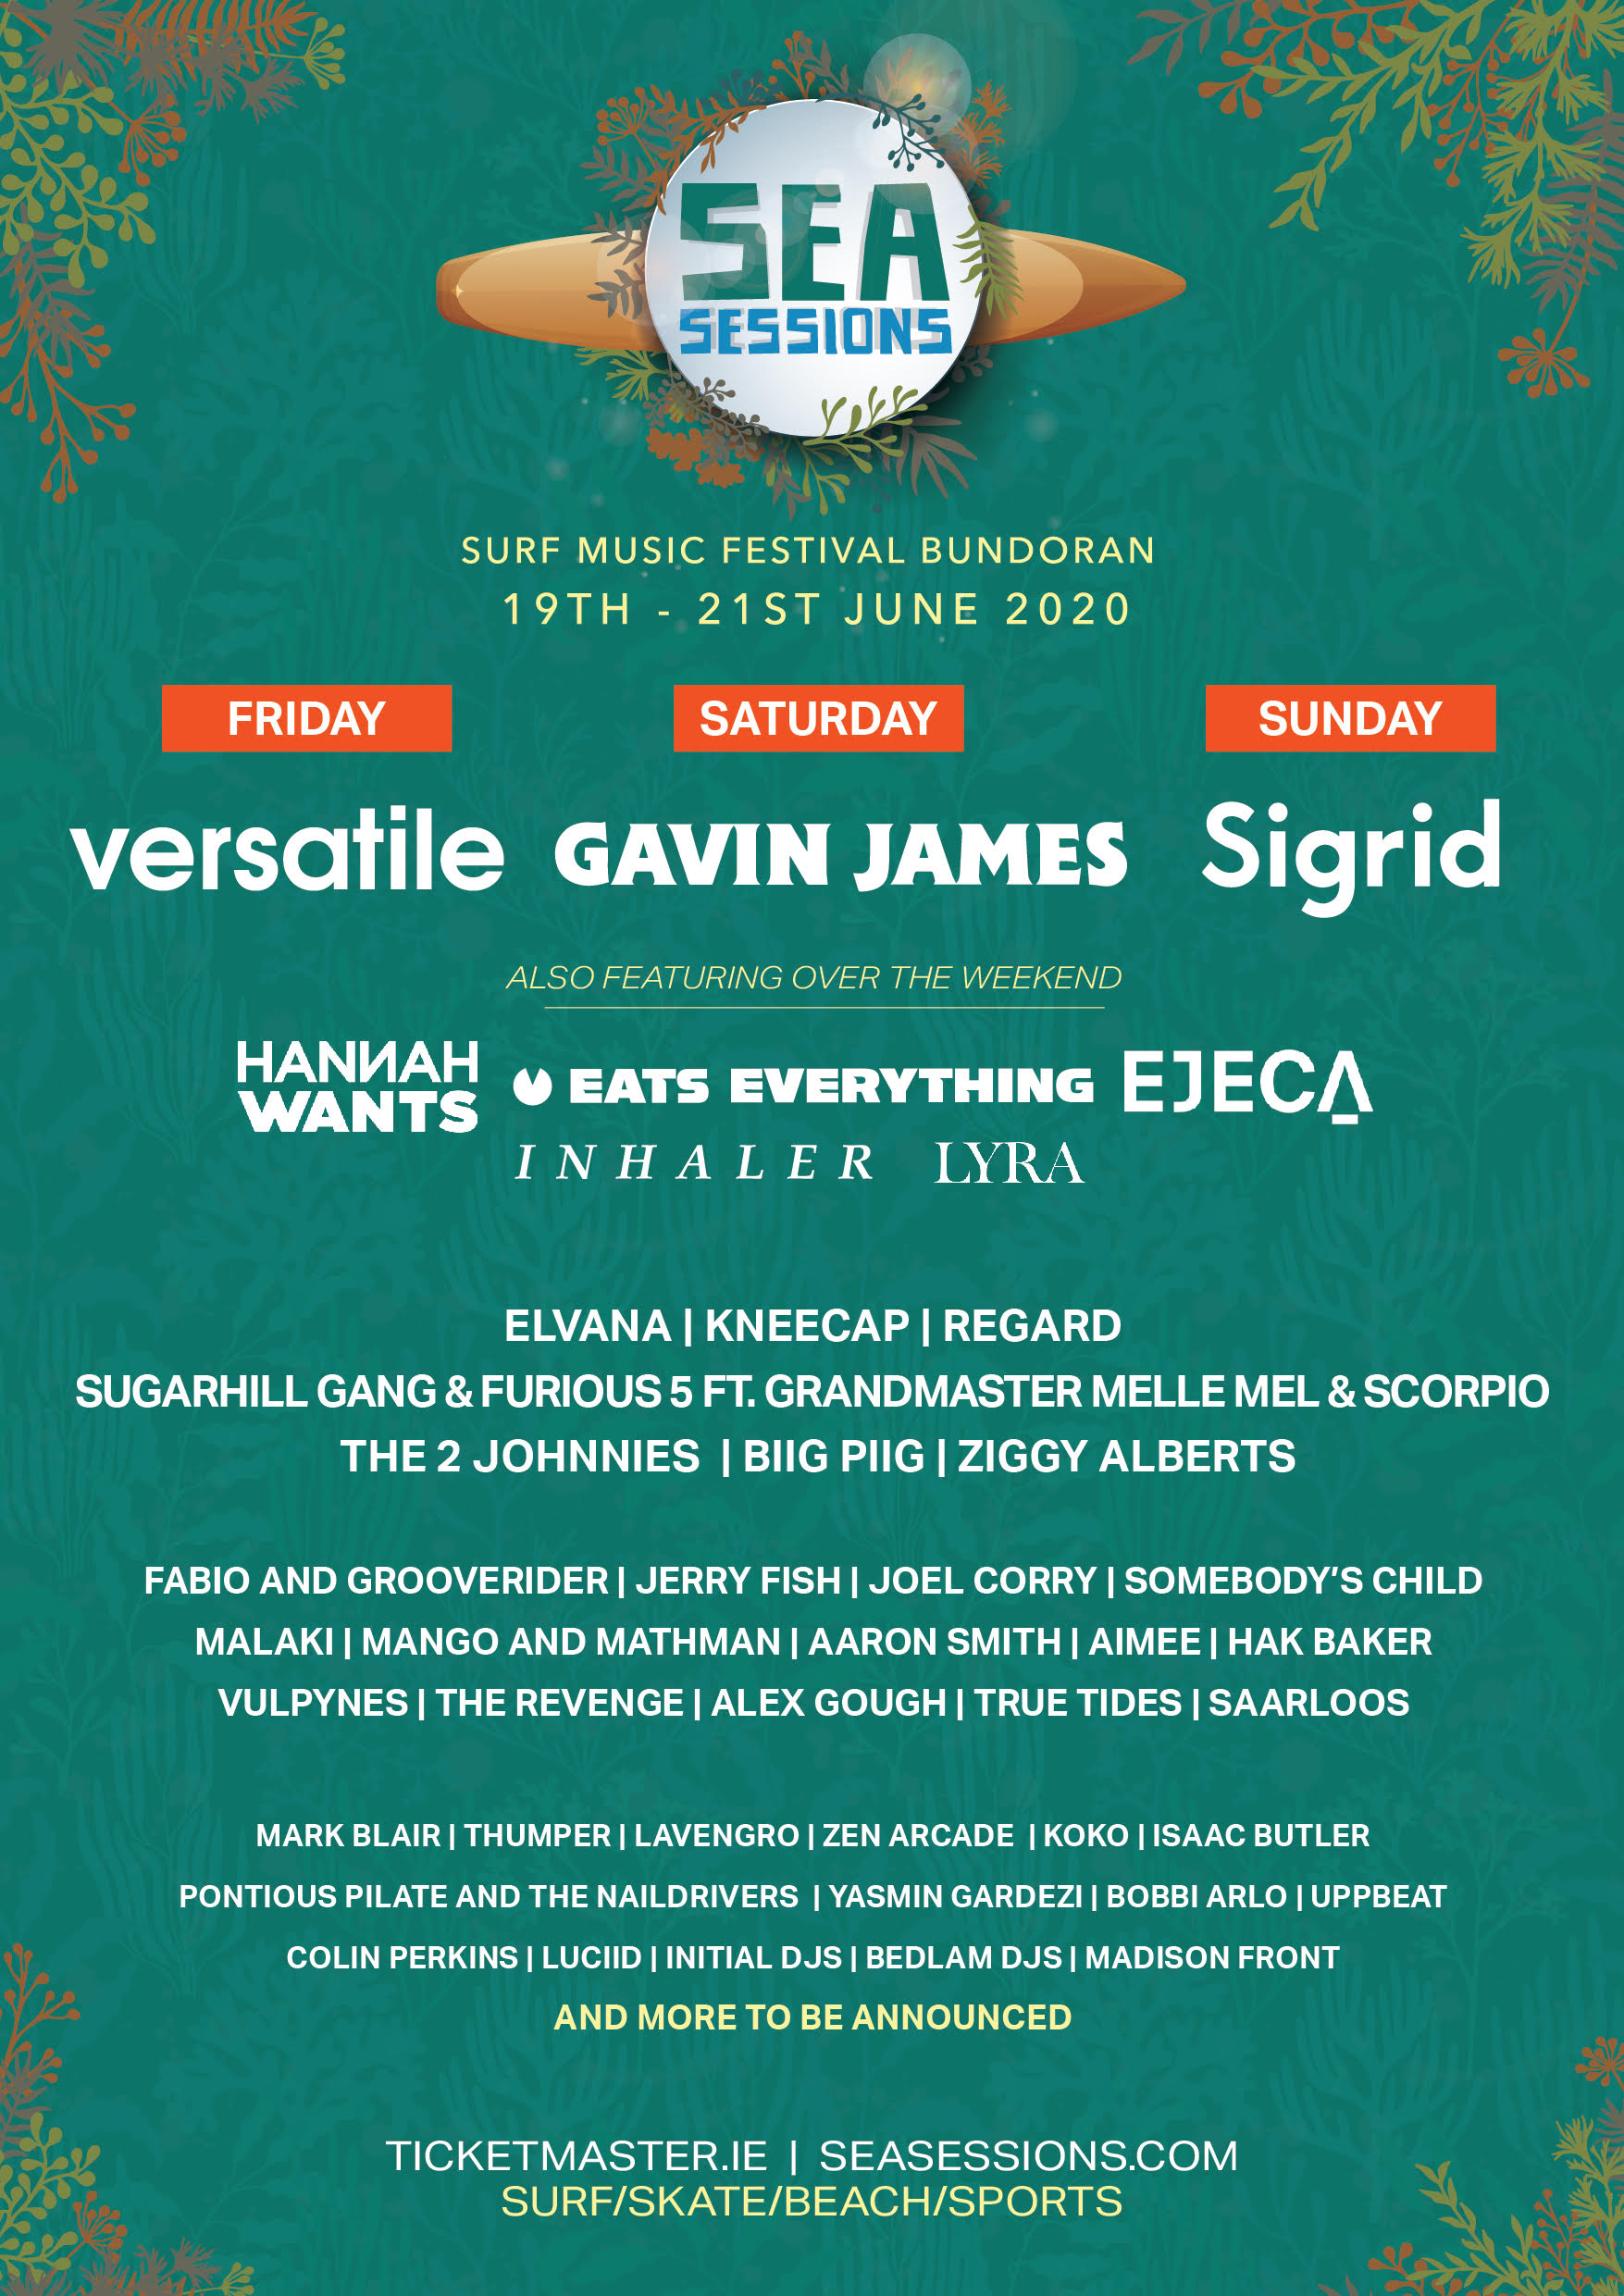 Sea Sessions 2020 announce new acts & daily headliner breakdown